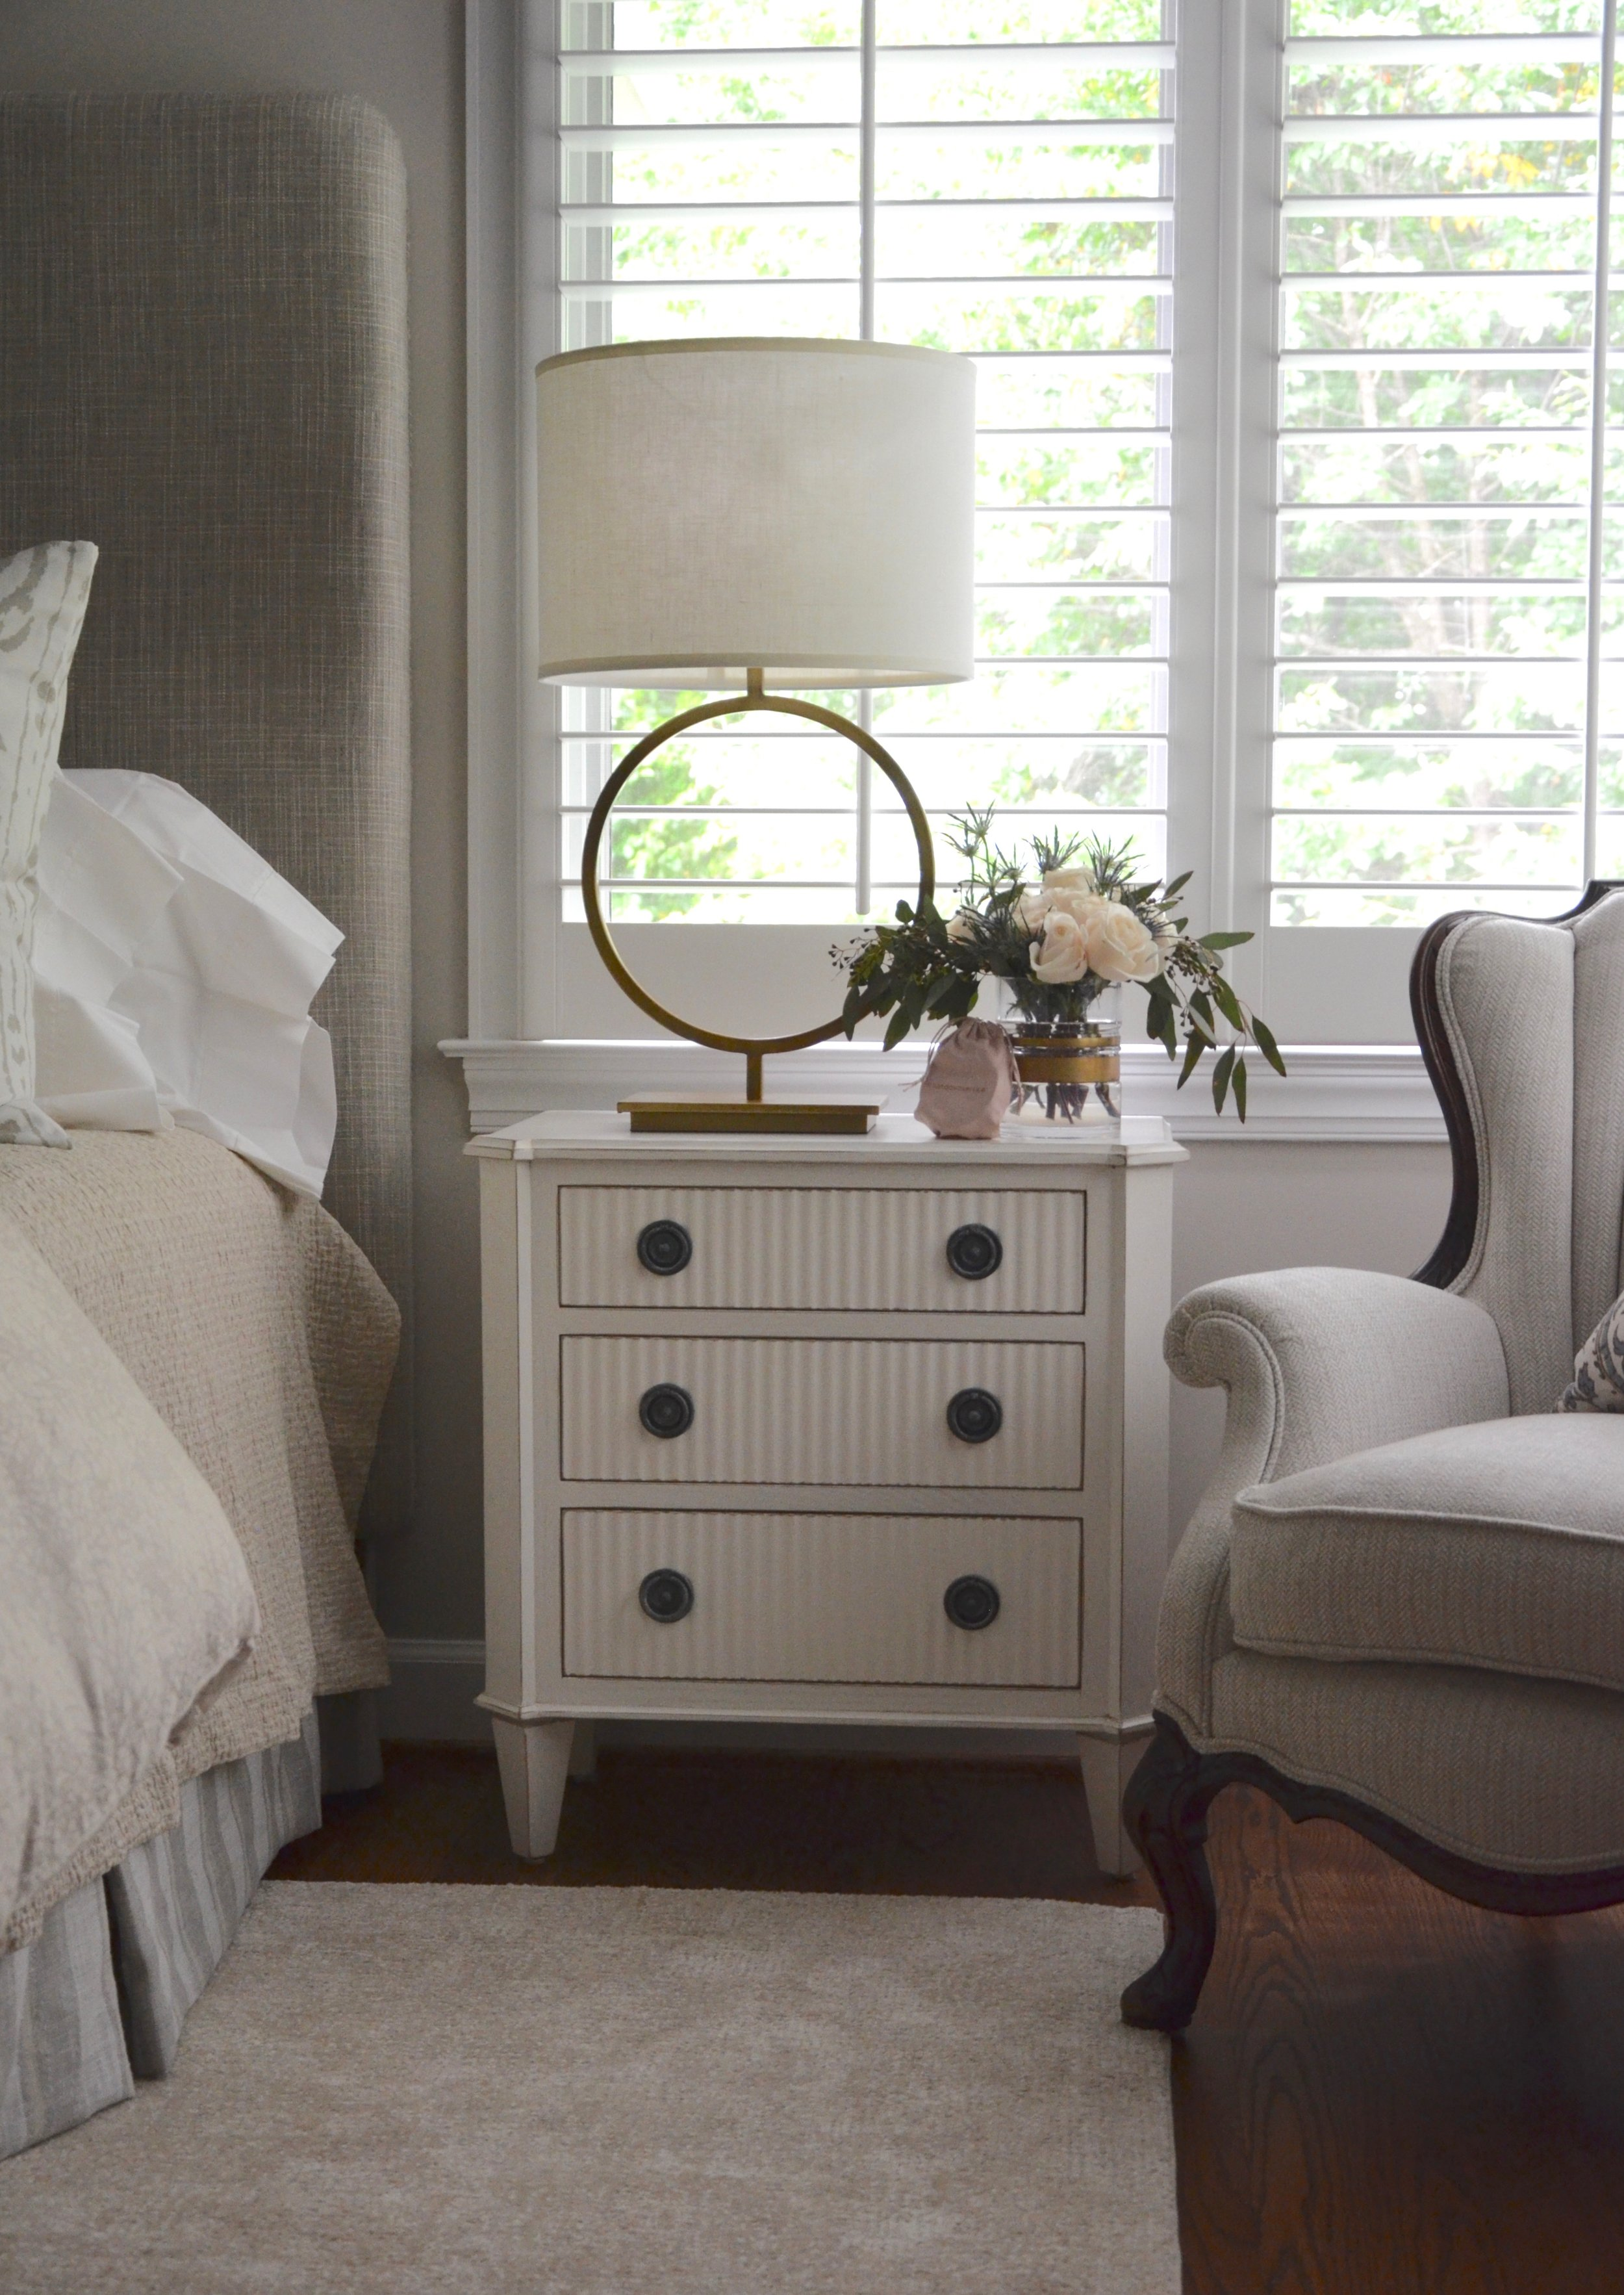 """Sentimental chair reupholstery, updated nightstands and table lamps, turndown swag bag in our client """"Turning-down for an Update"""" in McLean, VA. Turndown Service and Design by Valerianne of DC."""